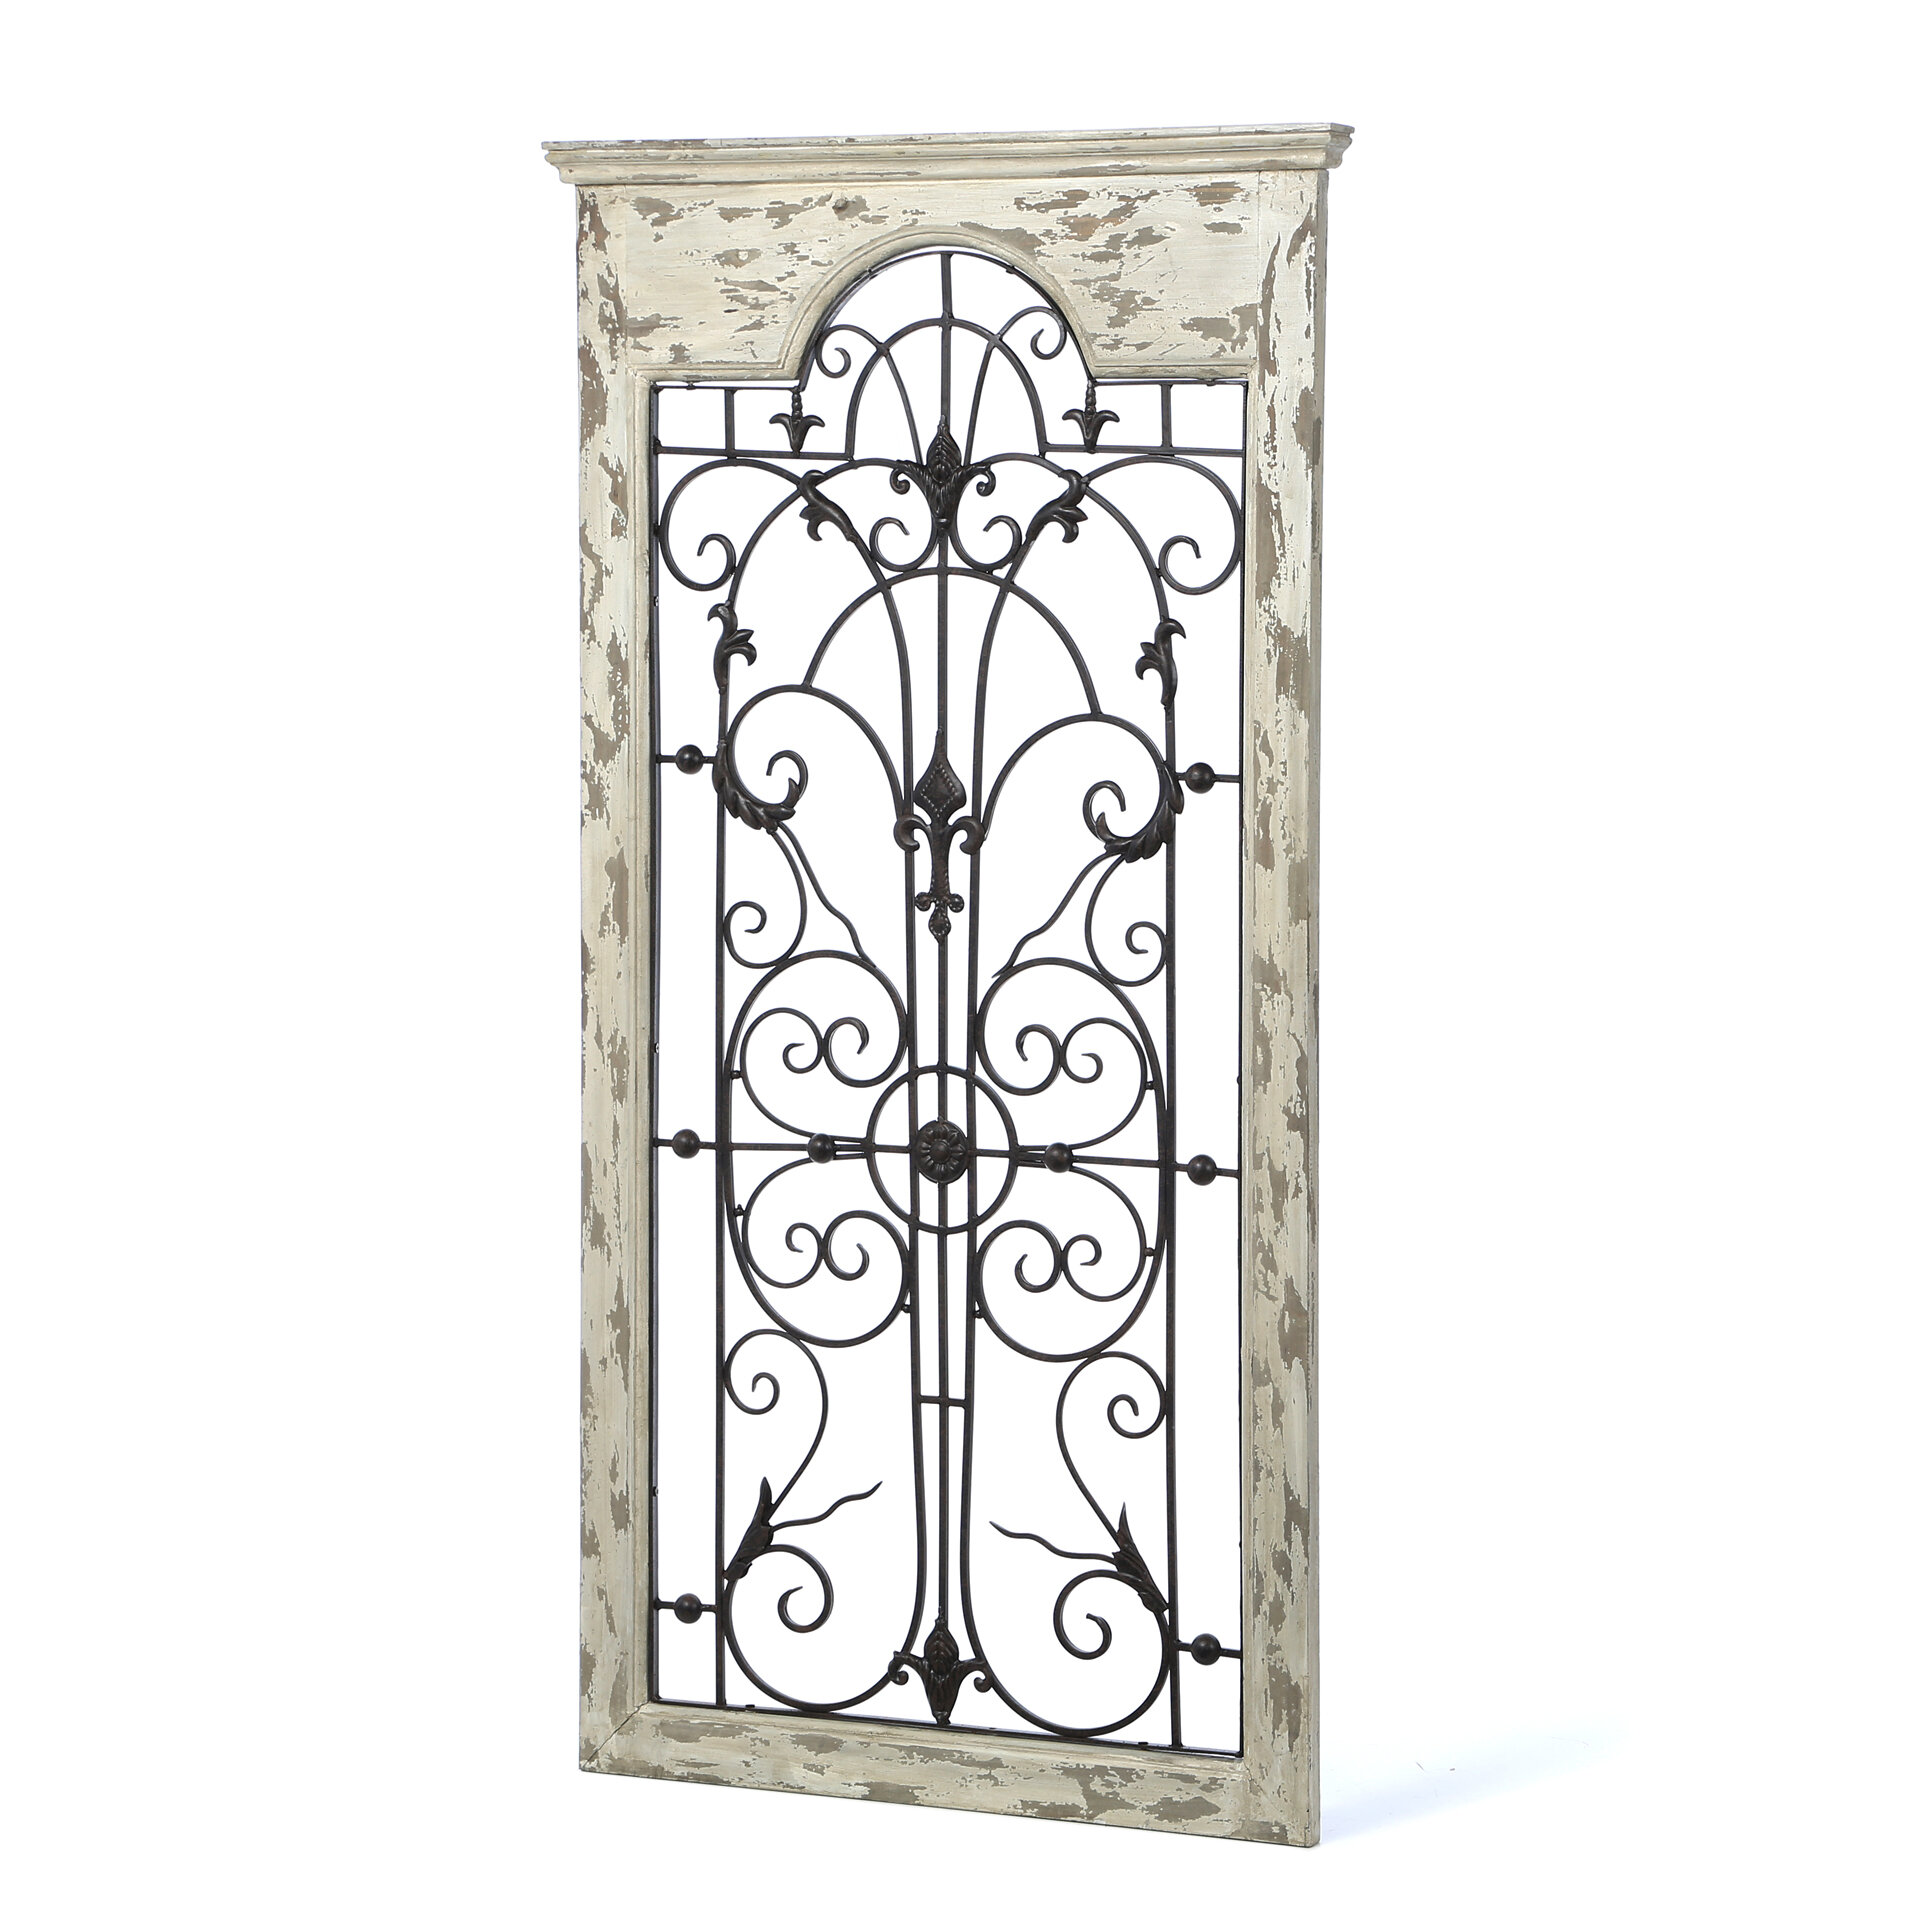 Iron Gate Wall Decor Simple One Allium Way Gate White Wood And Metal Wall Décor & Reviews Review